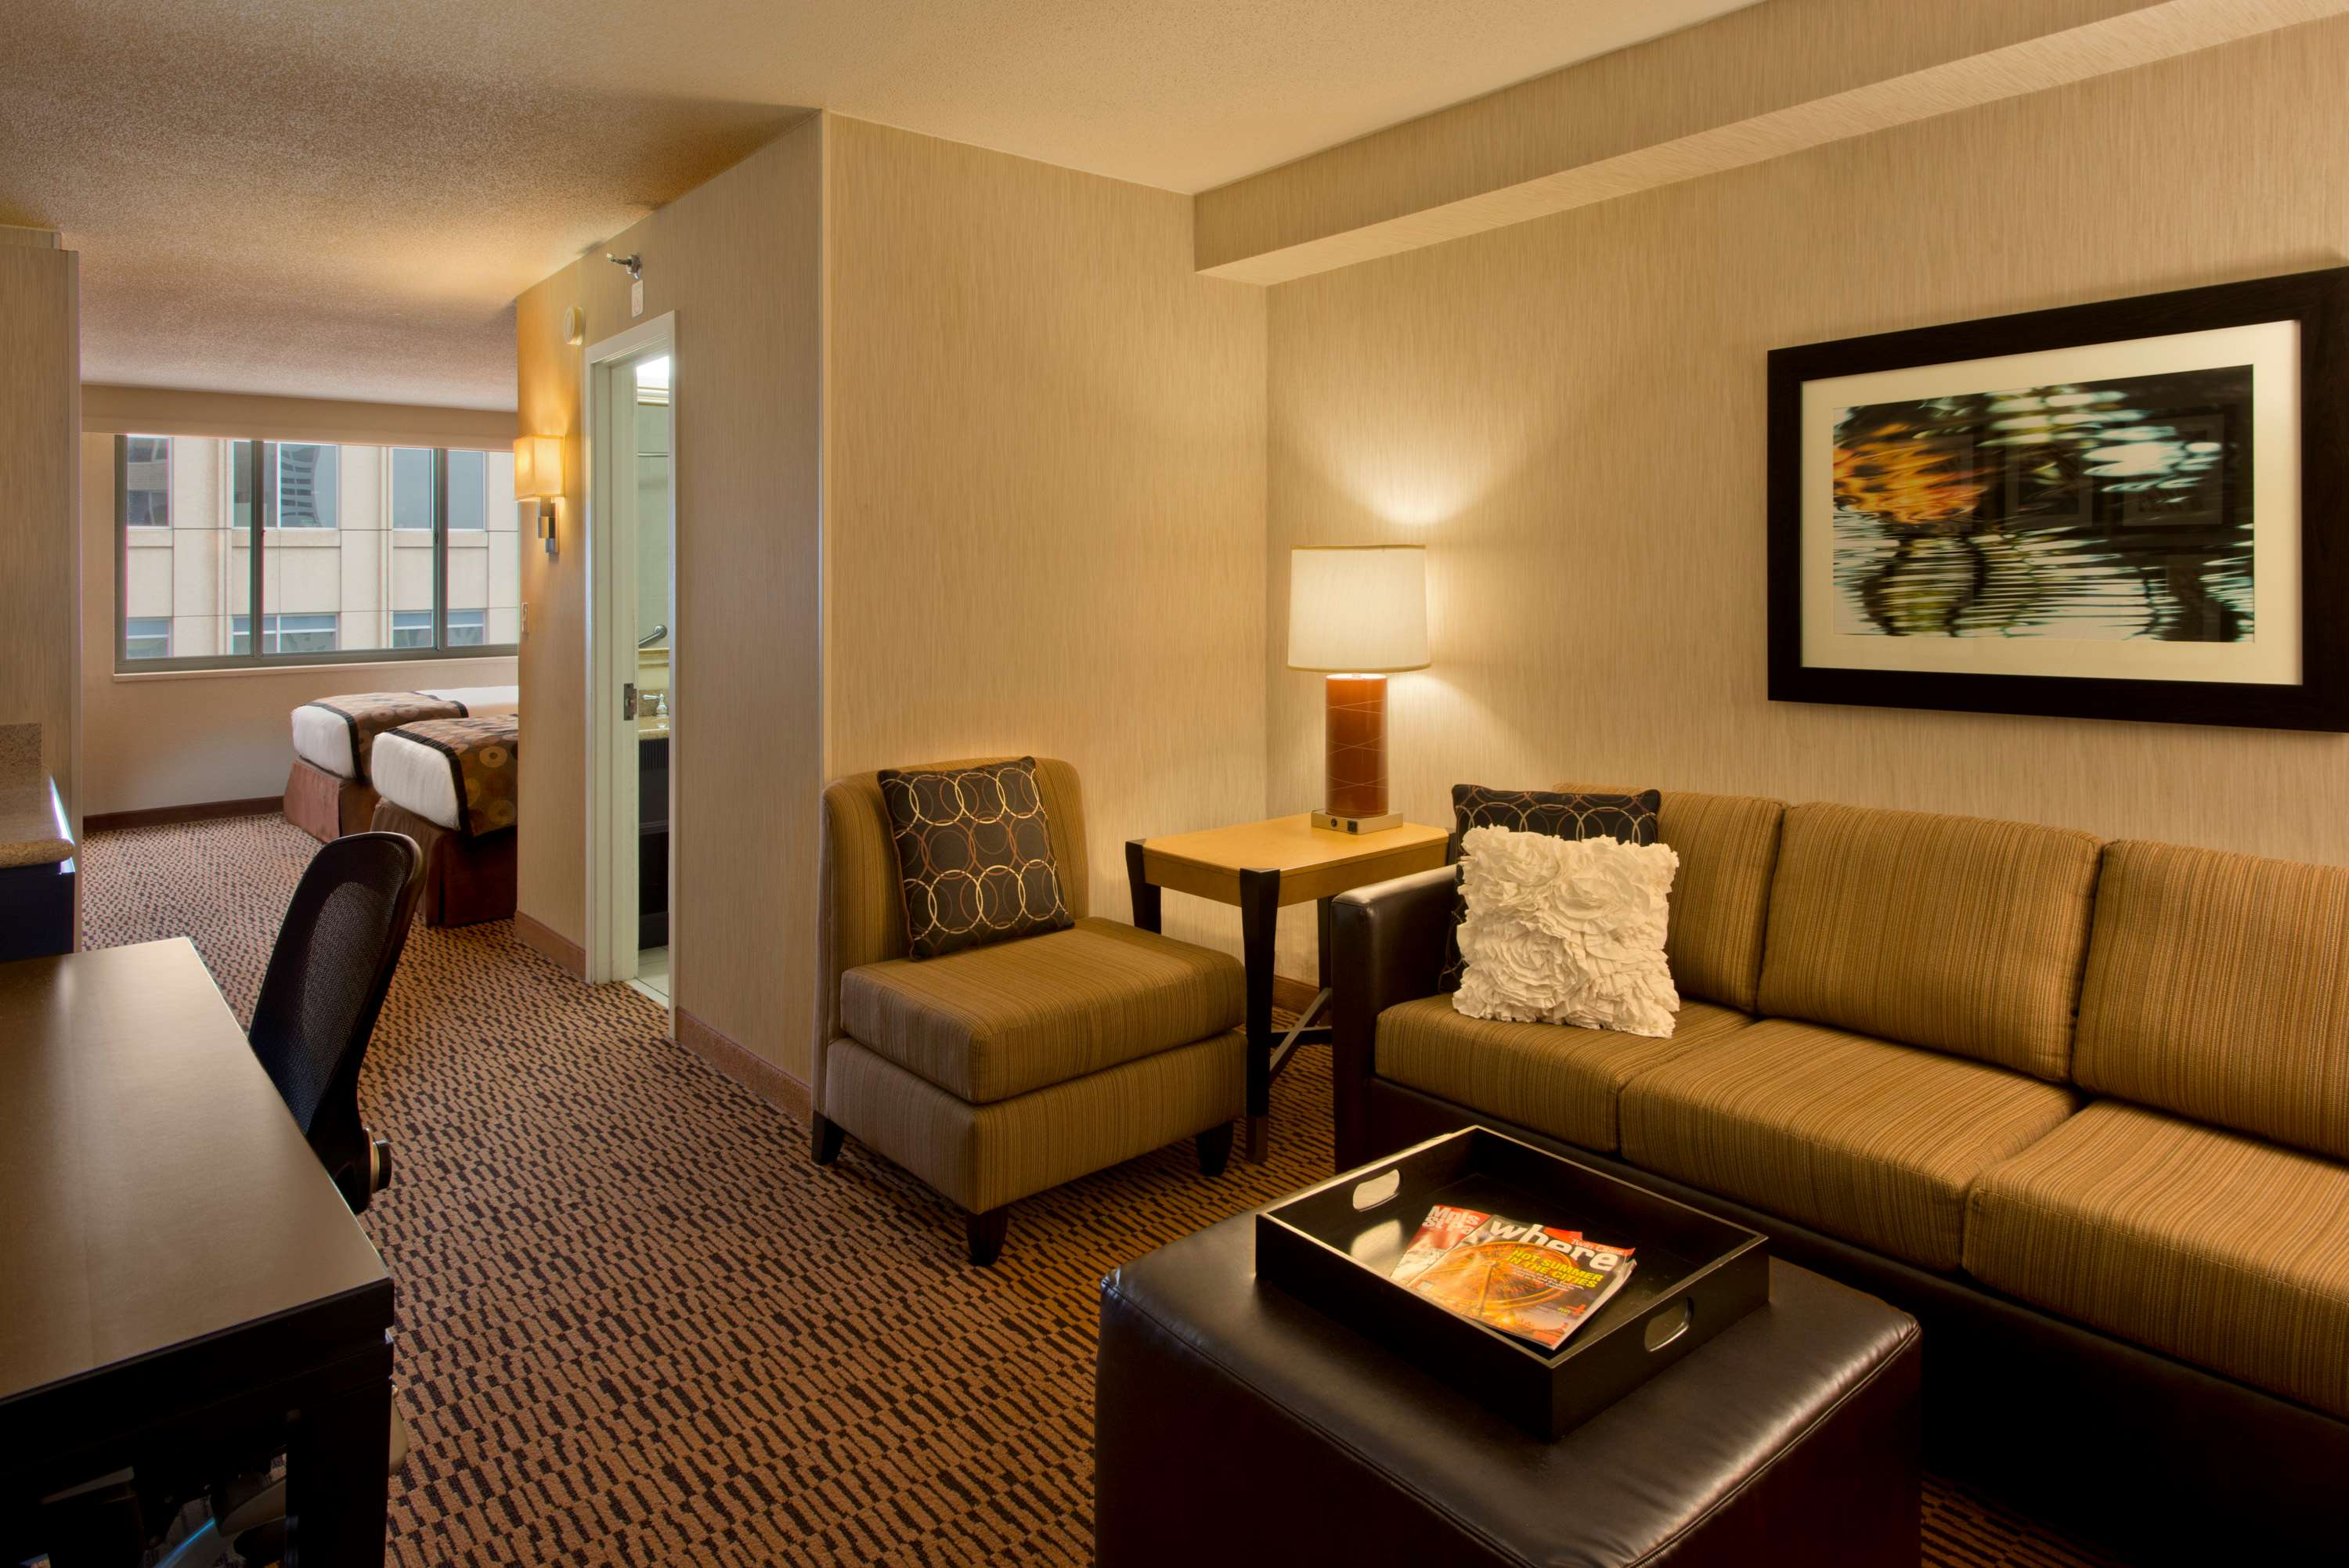 DoubleTree Suites by Hilton Hotel Minneapolis image 13